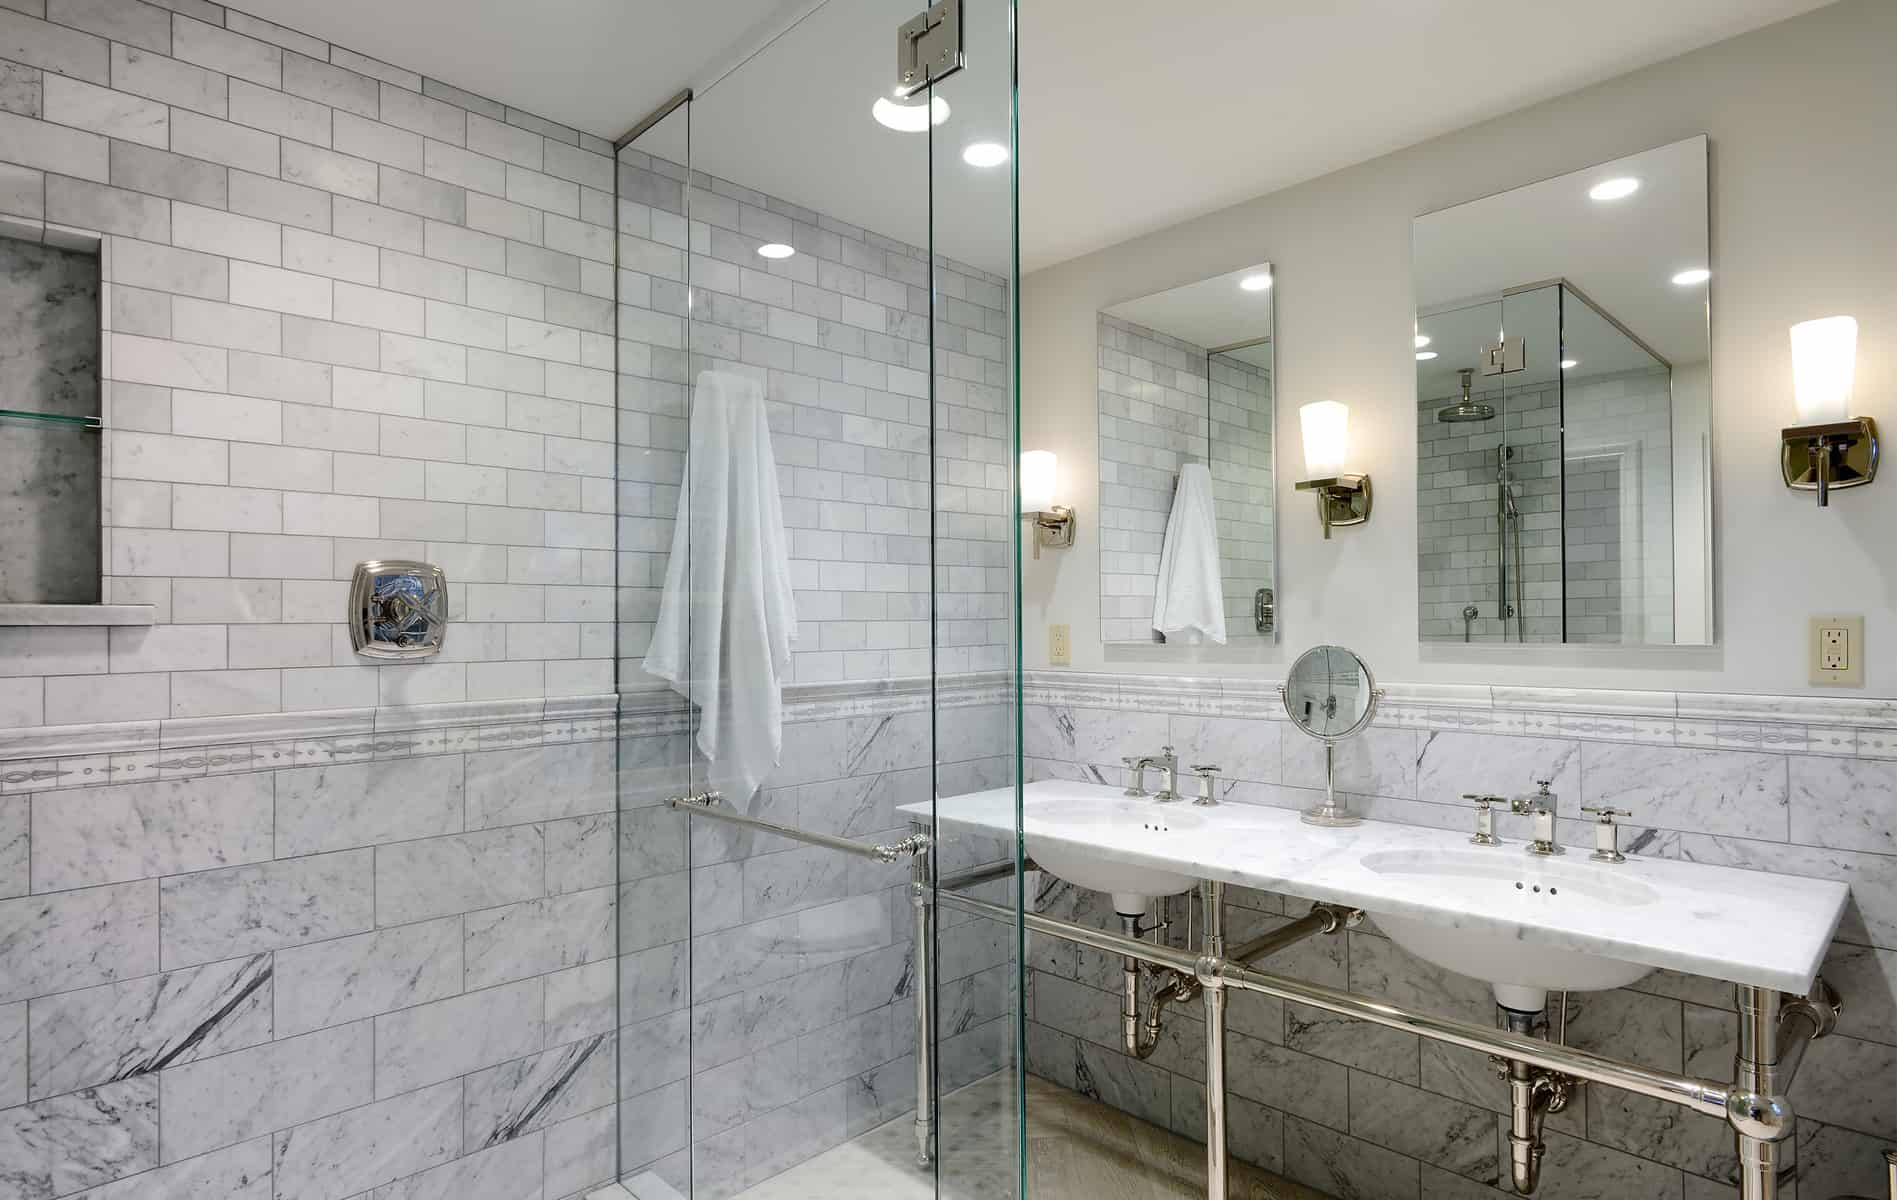 7 smart strategies for bathroom remodeling biederman for Bathroom remodel 70 square feet